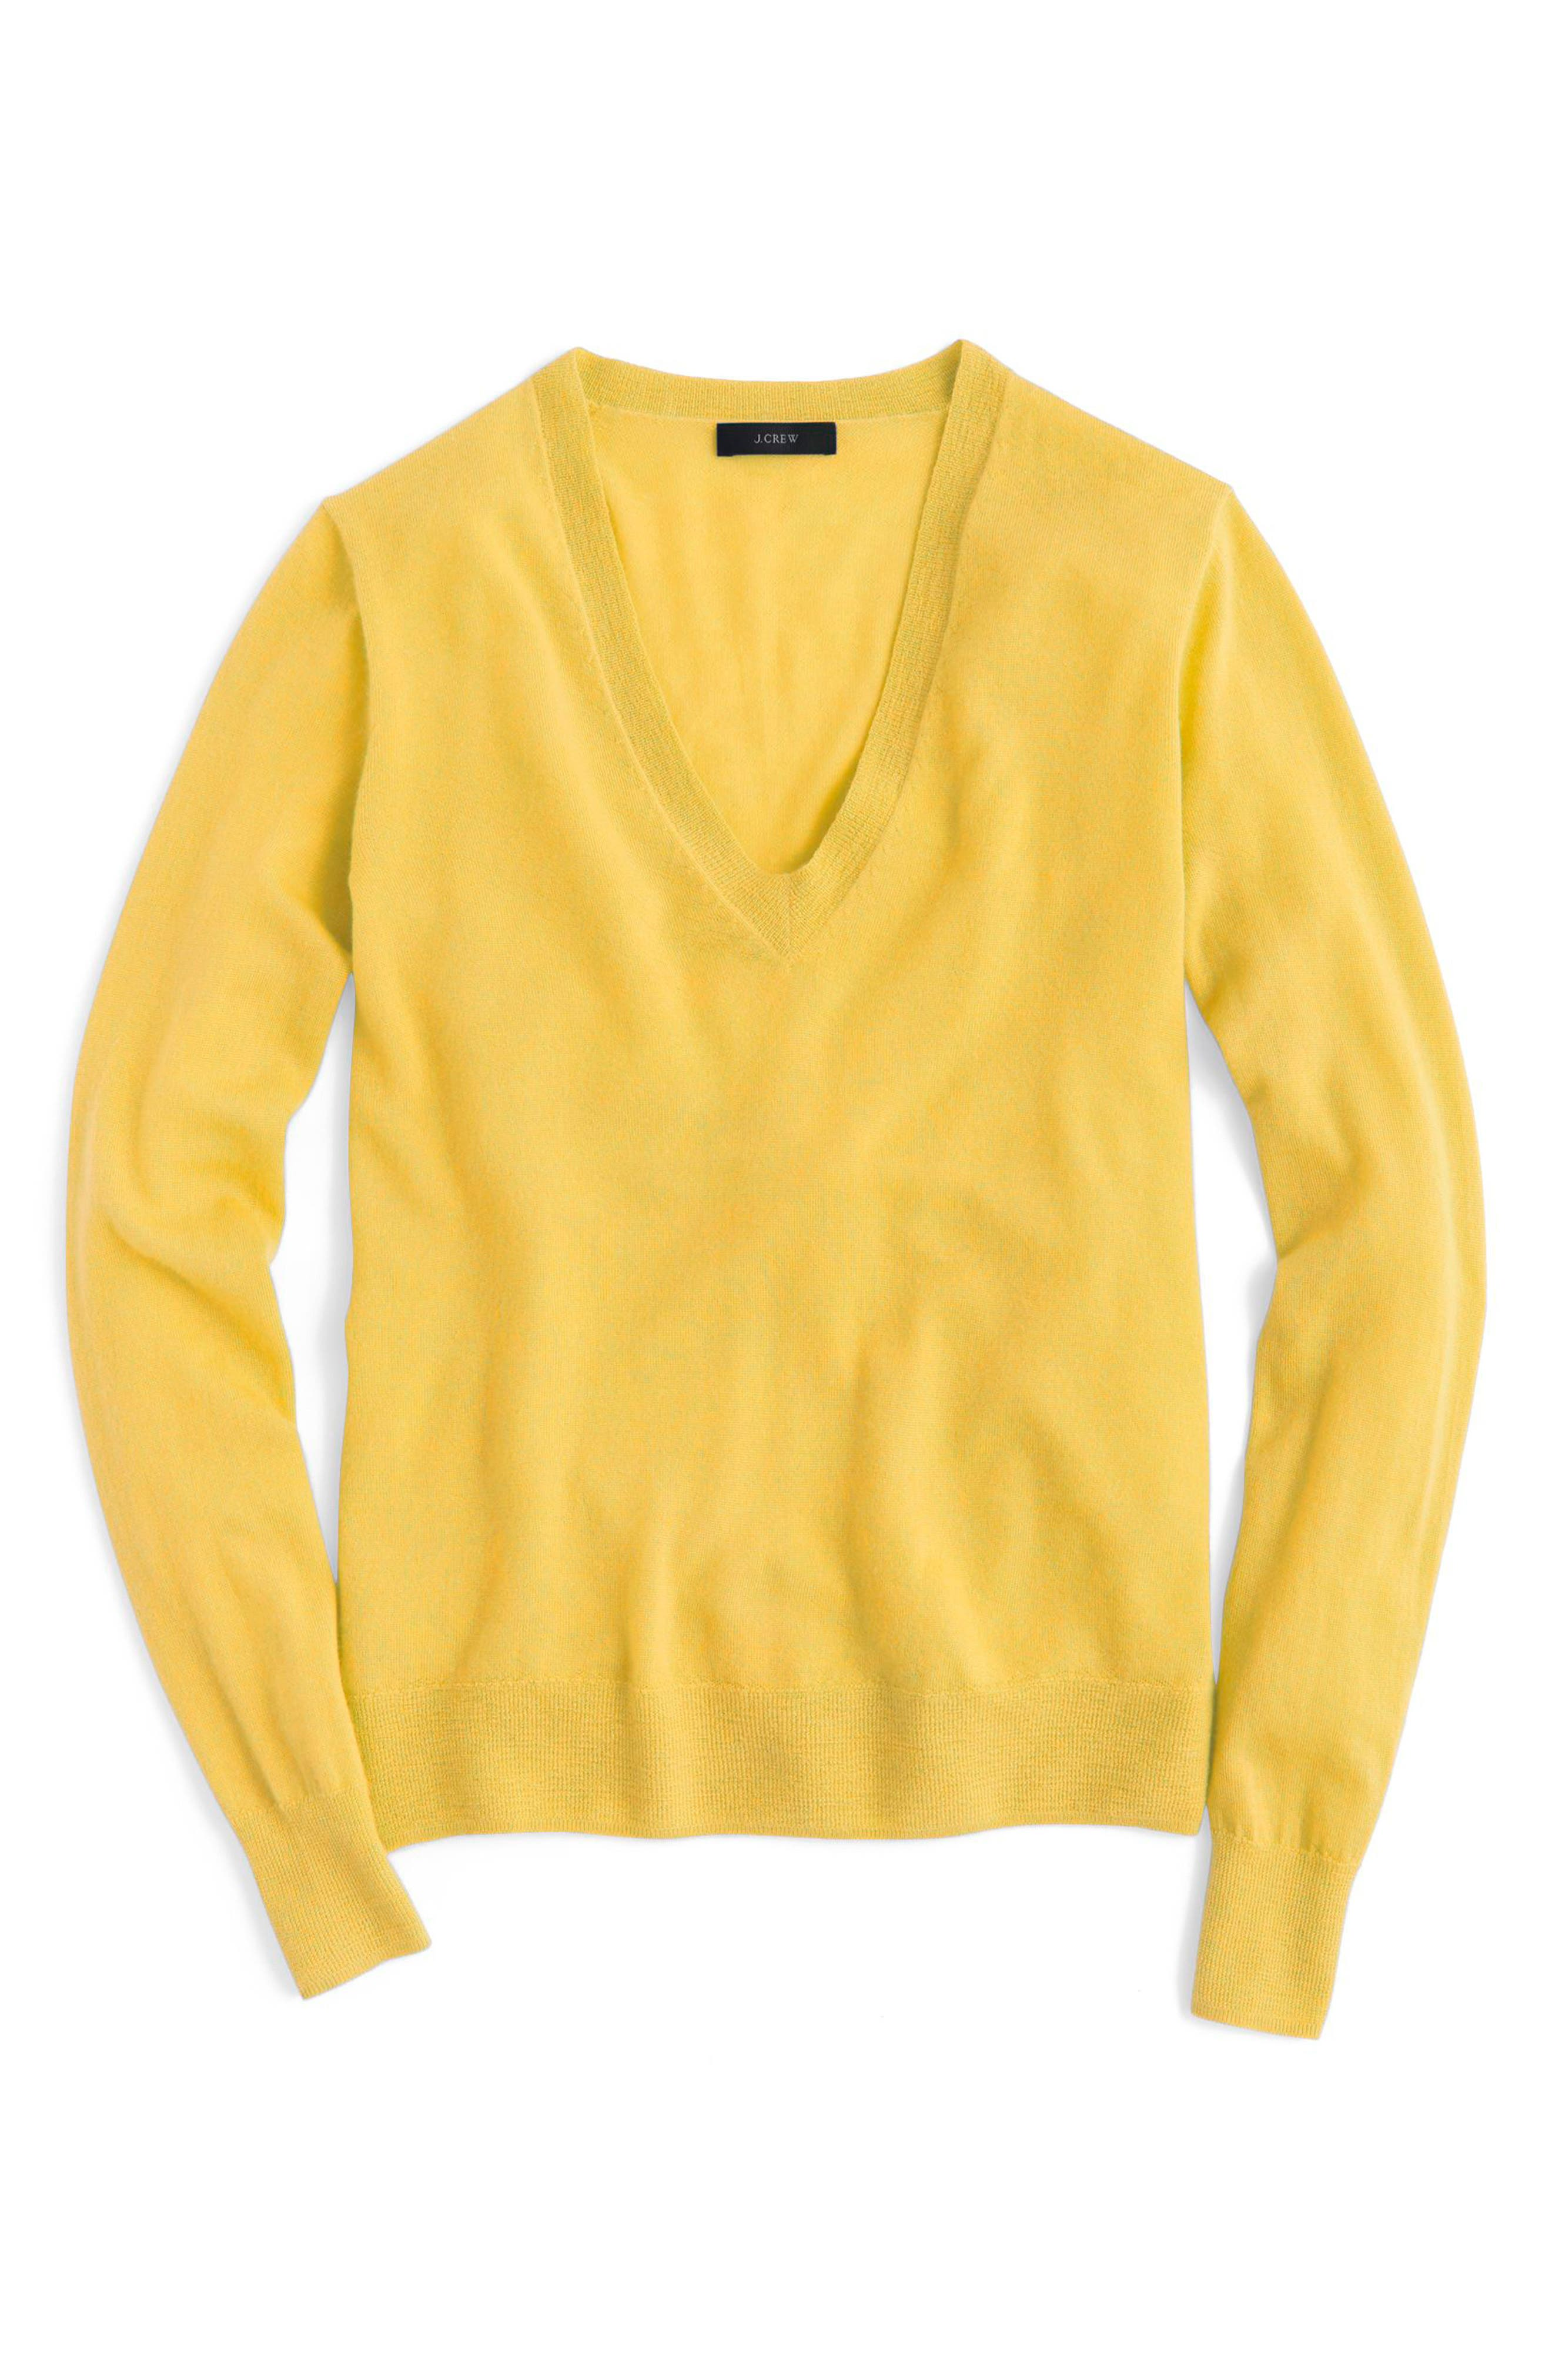 Alternate Image 1 Selected - J.Crew V-Neck Italian Featherweight Cashmere Sweater